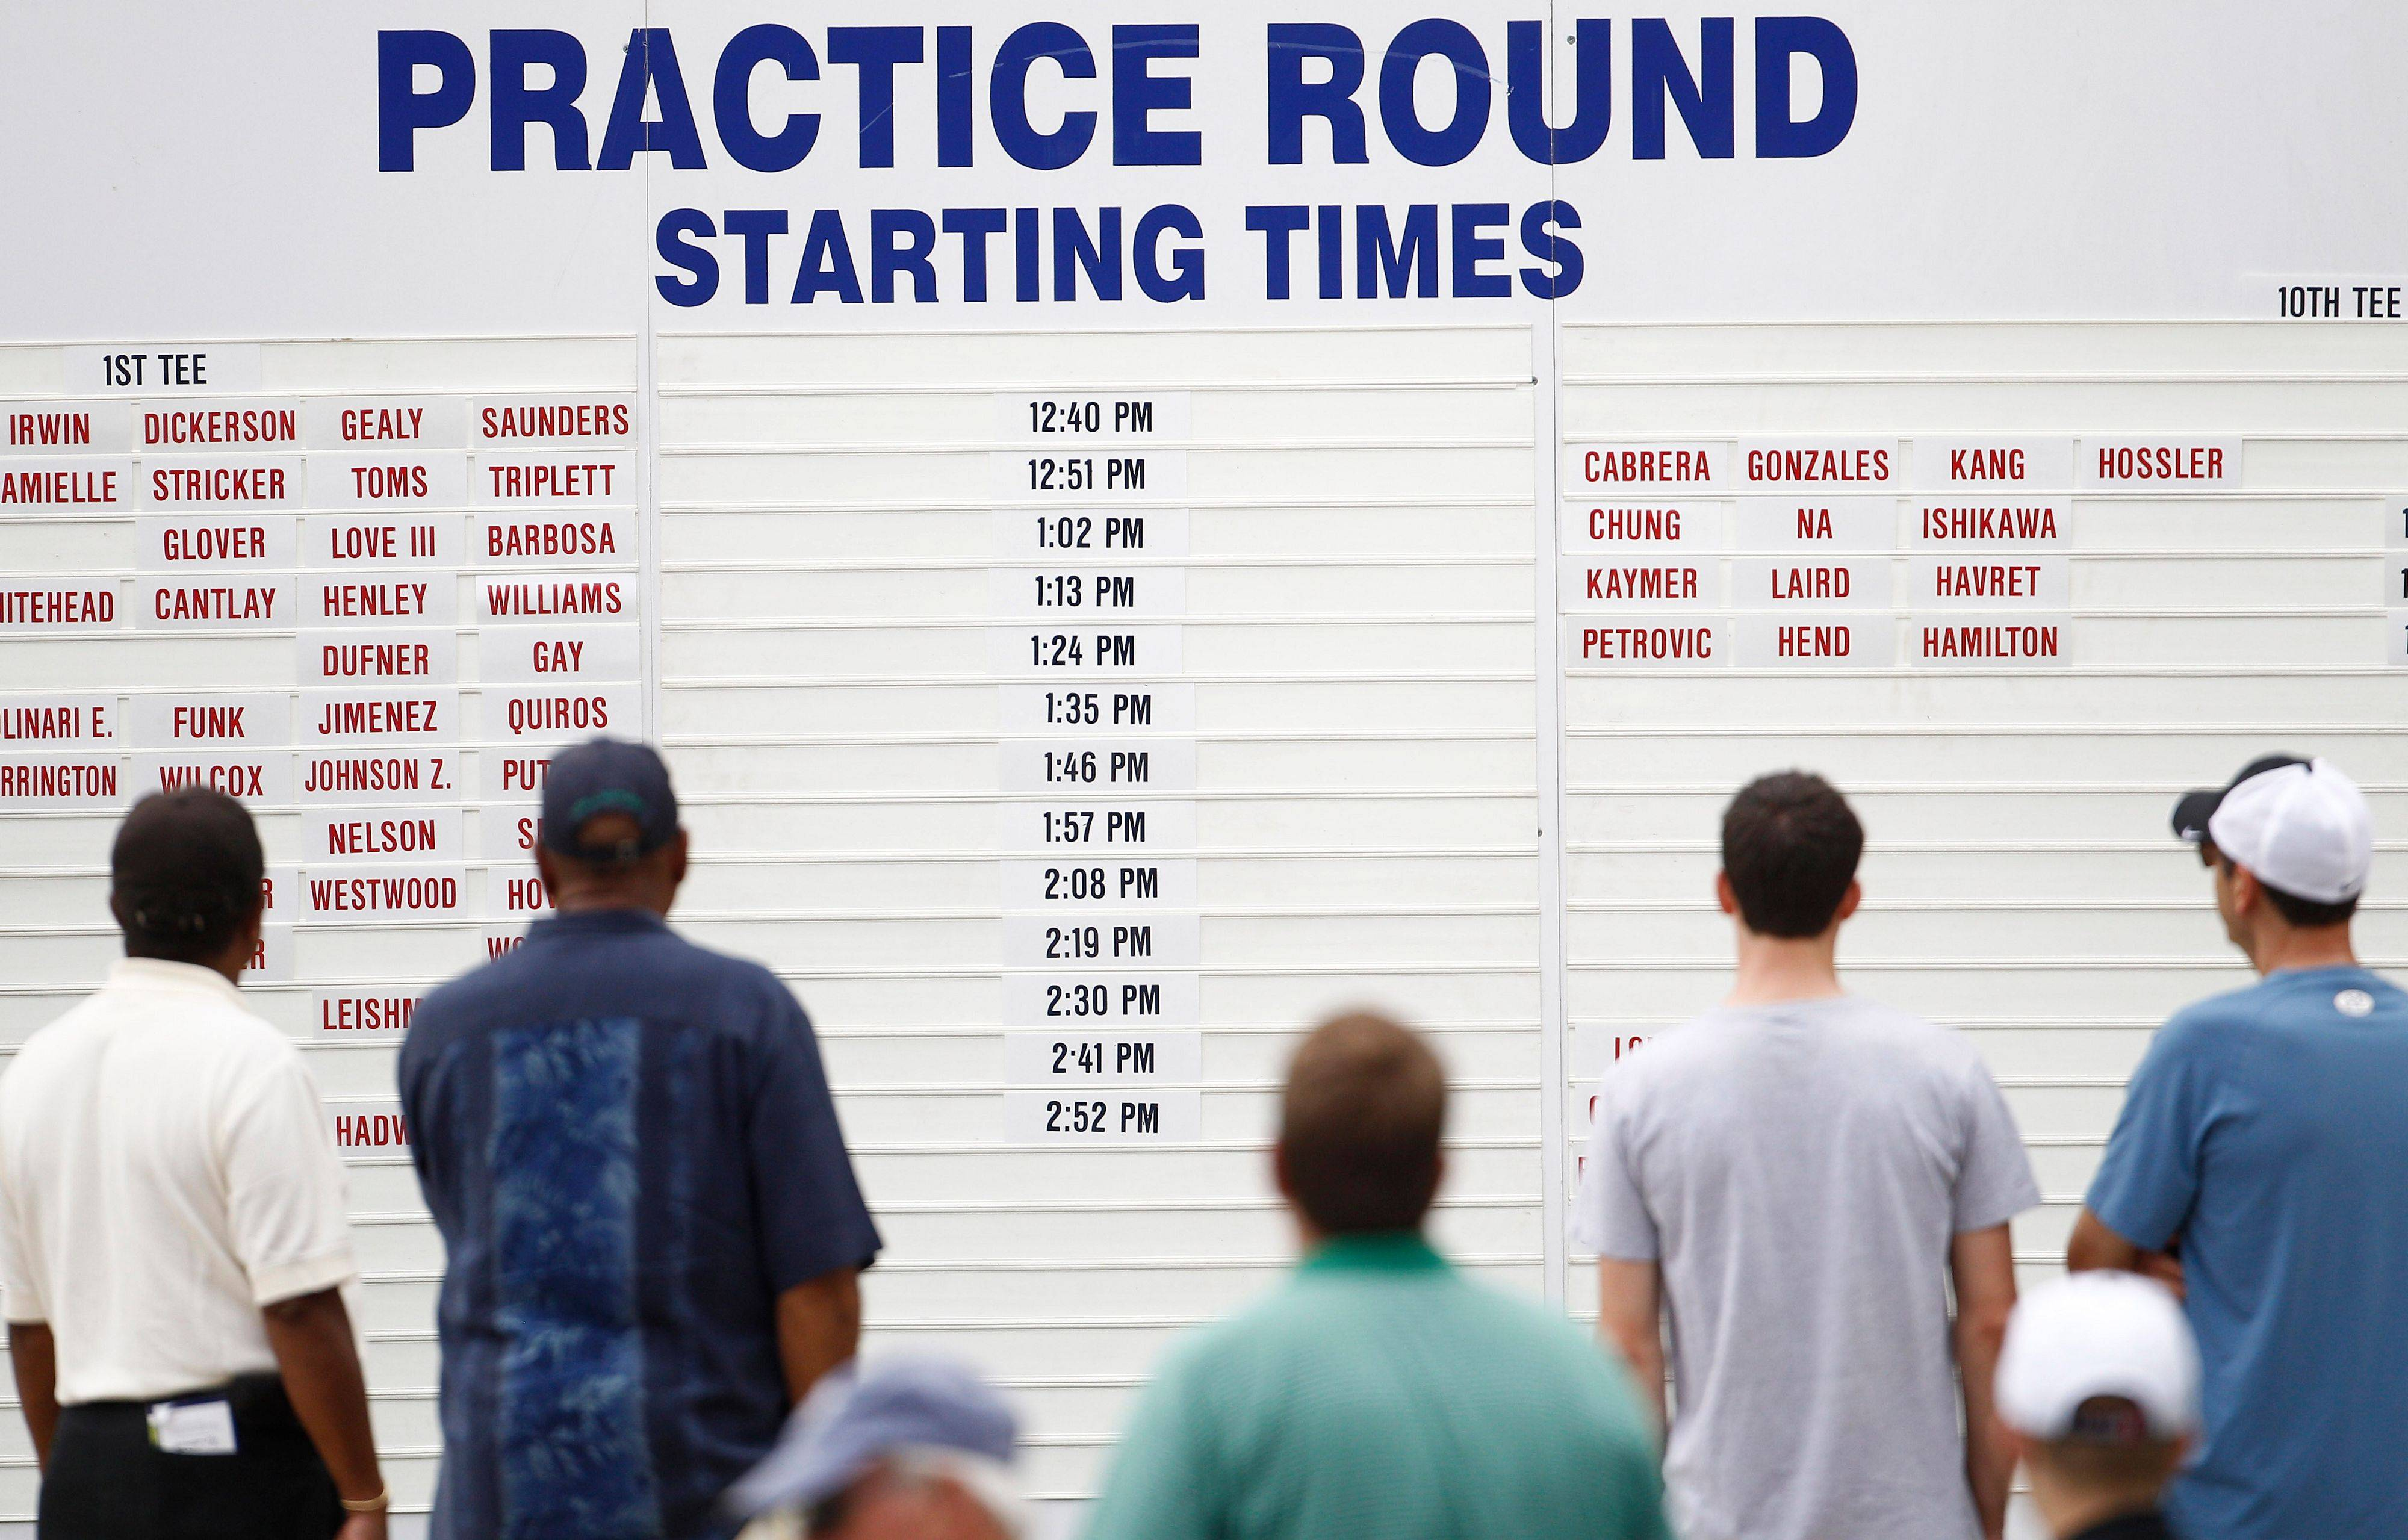 Fans look at the starting board during a practice round for the U.S. Open Championship golf tournament in Bethesda, Md.